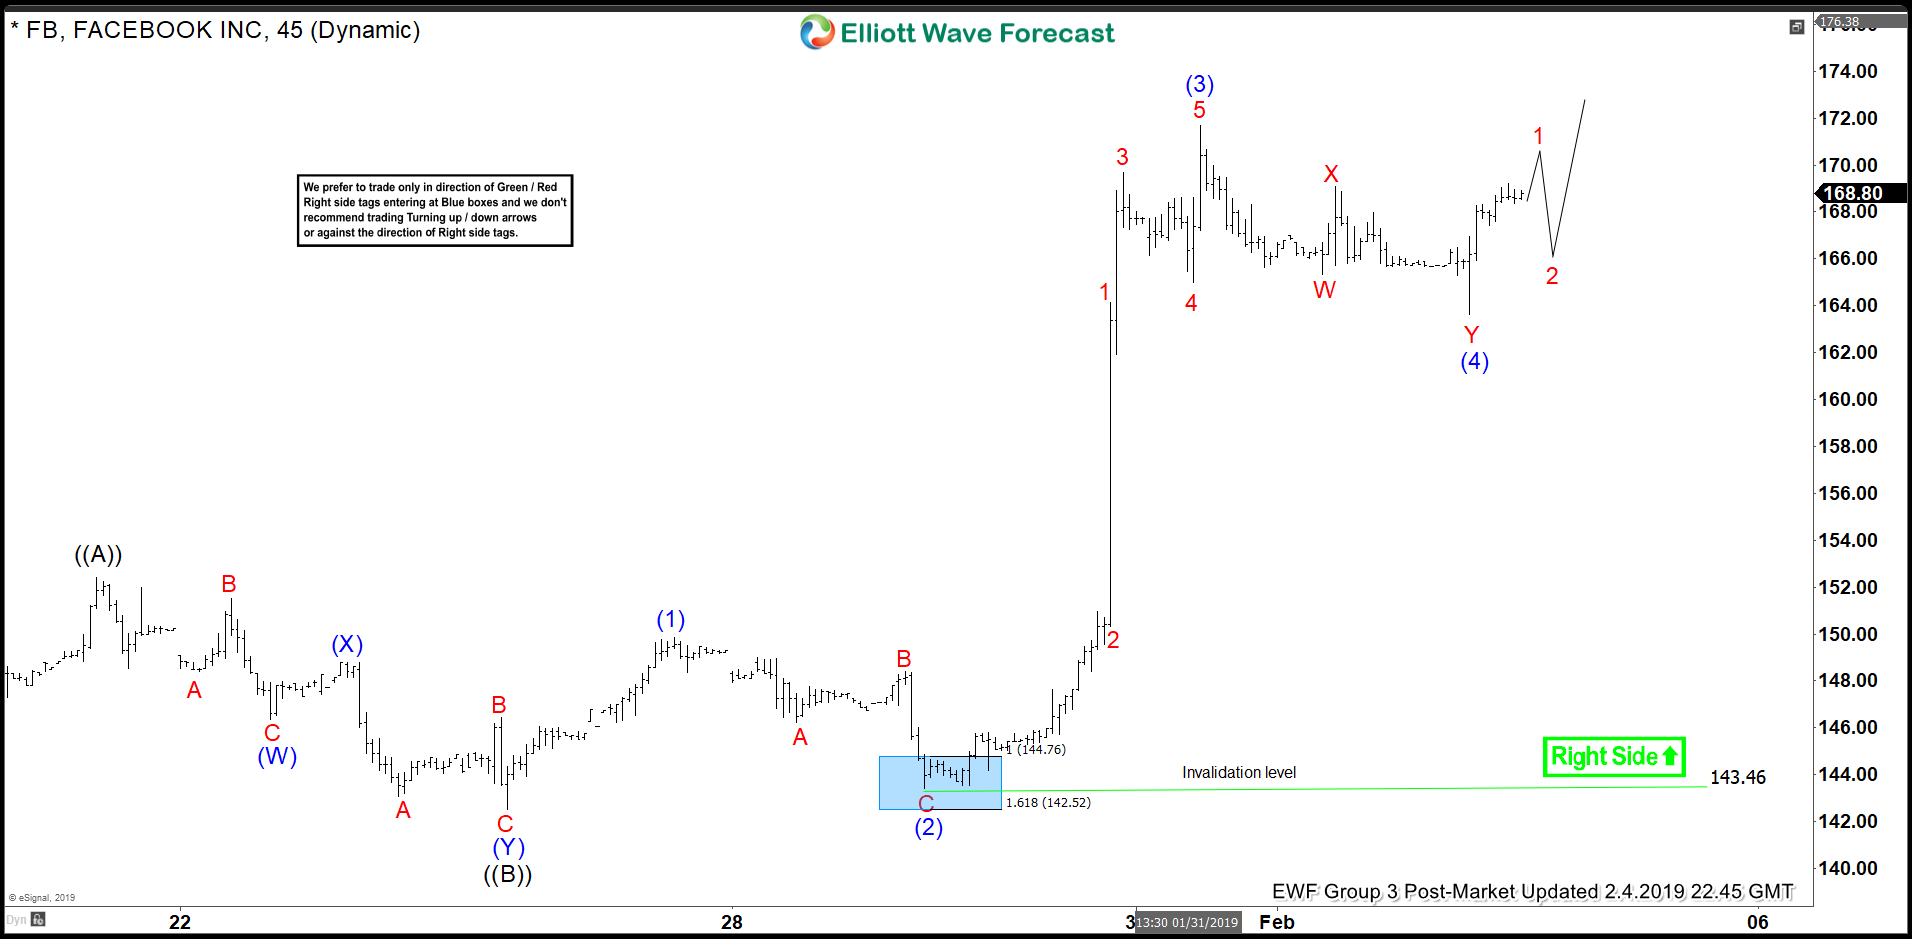 Elliott Wave View Suggest Another Push Higher In Facebook